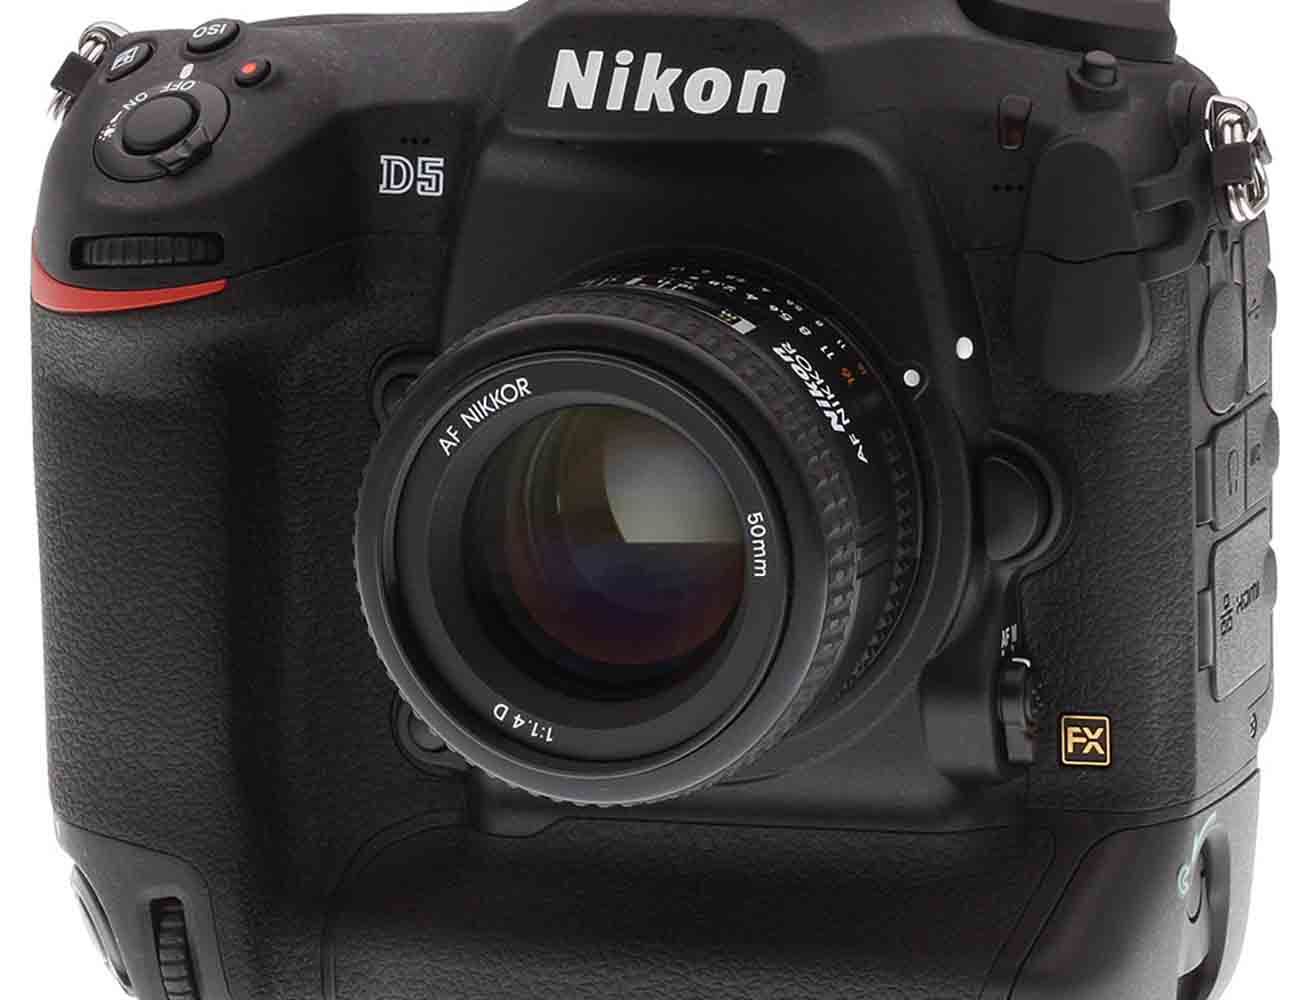 Nikon+D5+%26%238211%3B+FX-format+DSLR+With+Masterful+Image+Quality